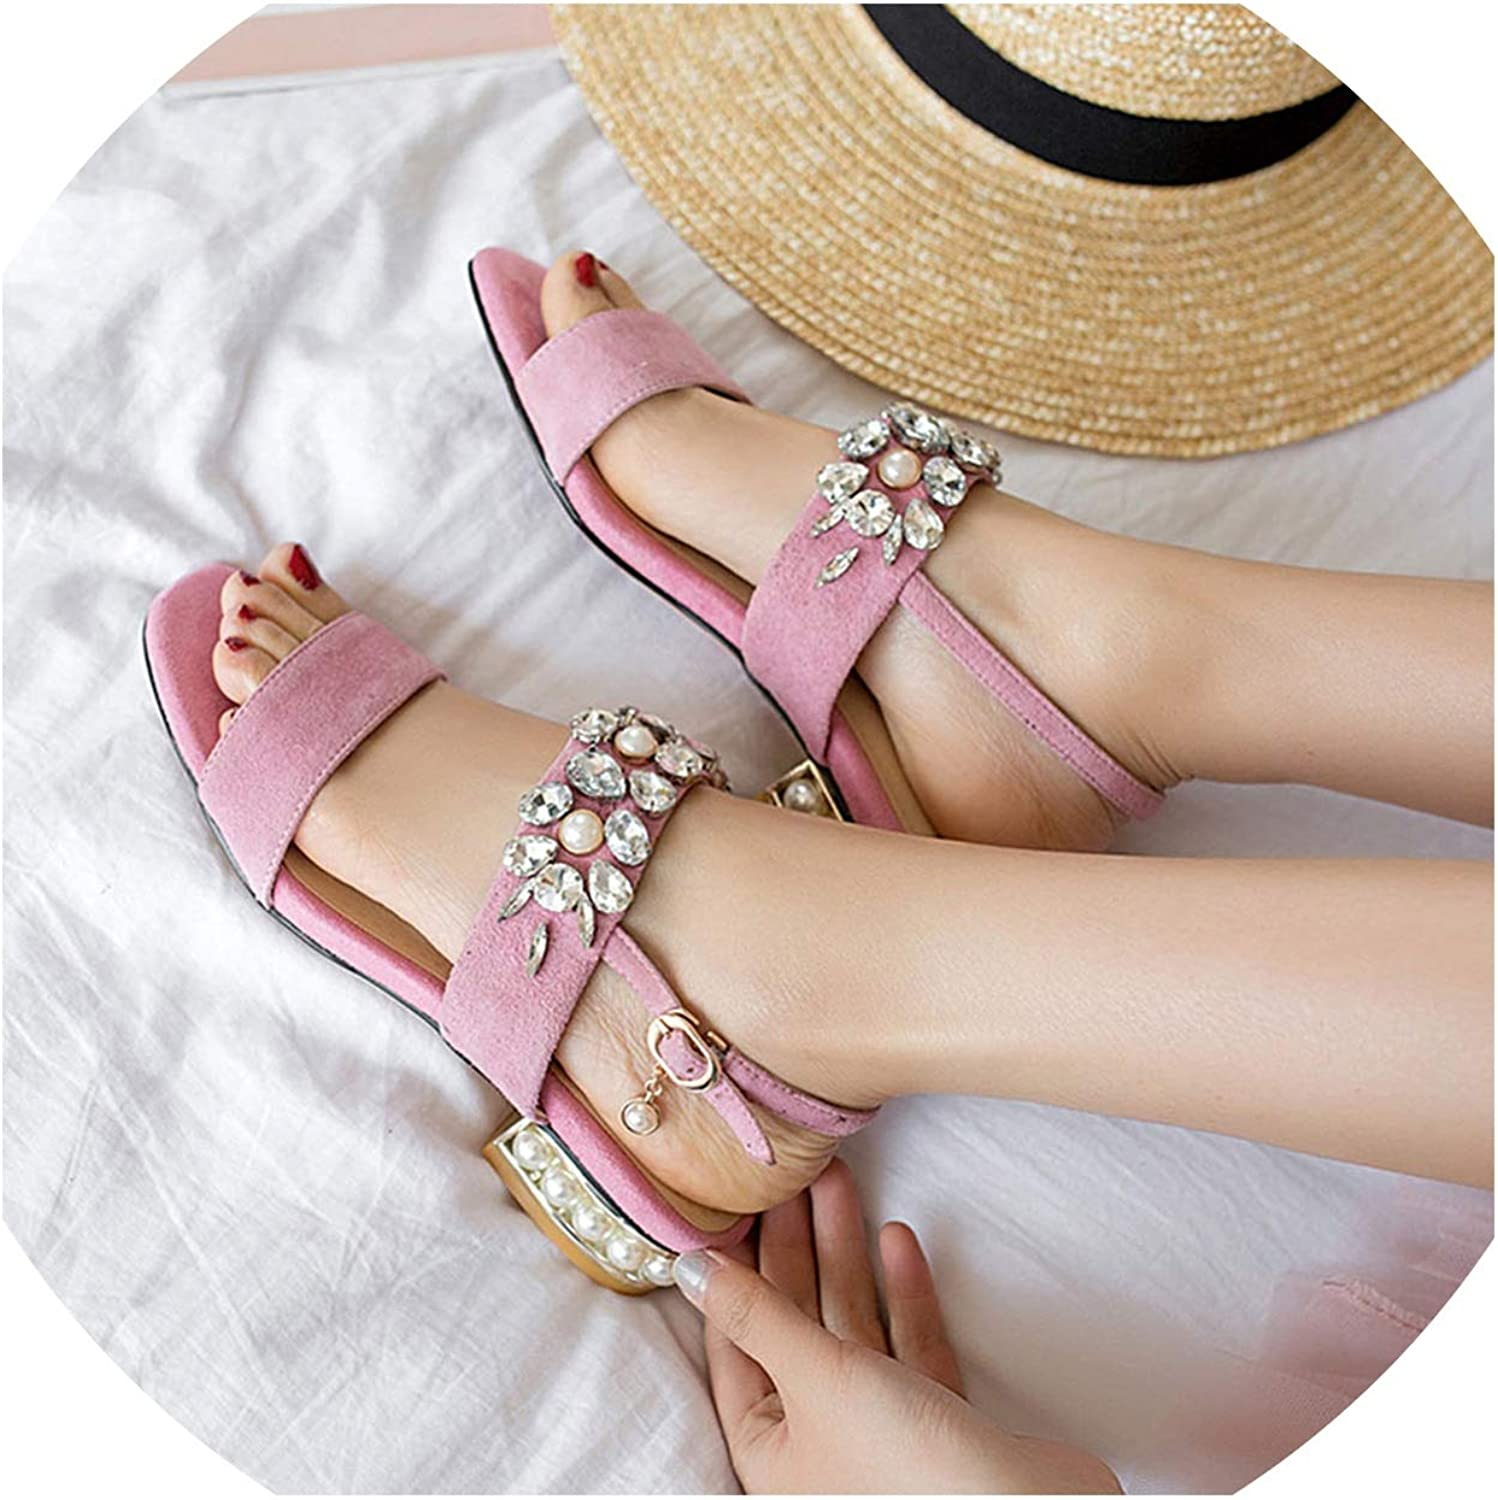 Women Sandals Suede Leather Sandals Women Casual Summer shoes